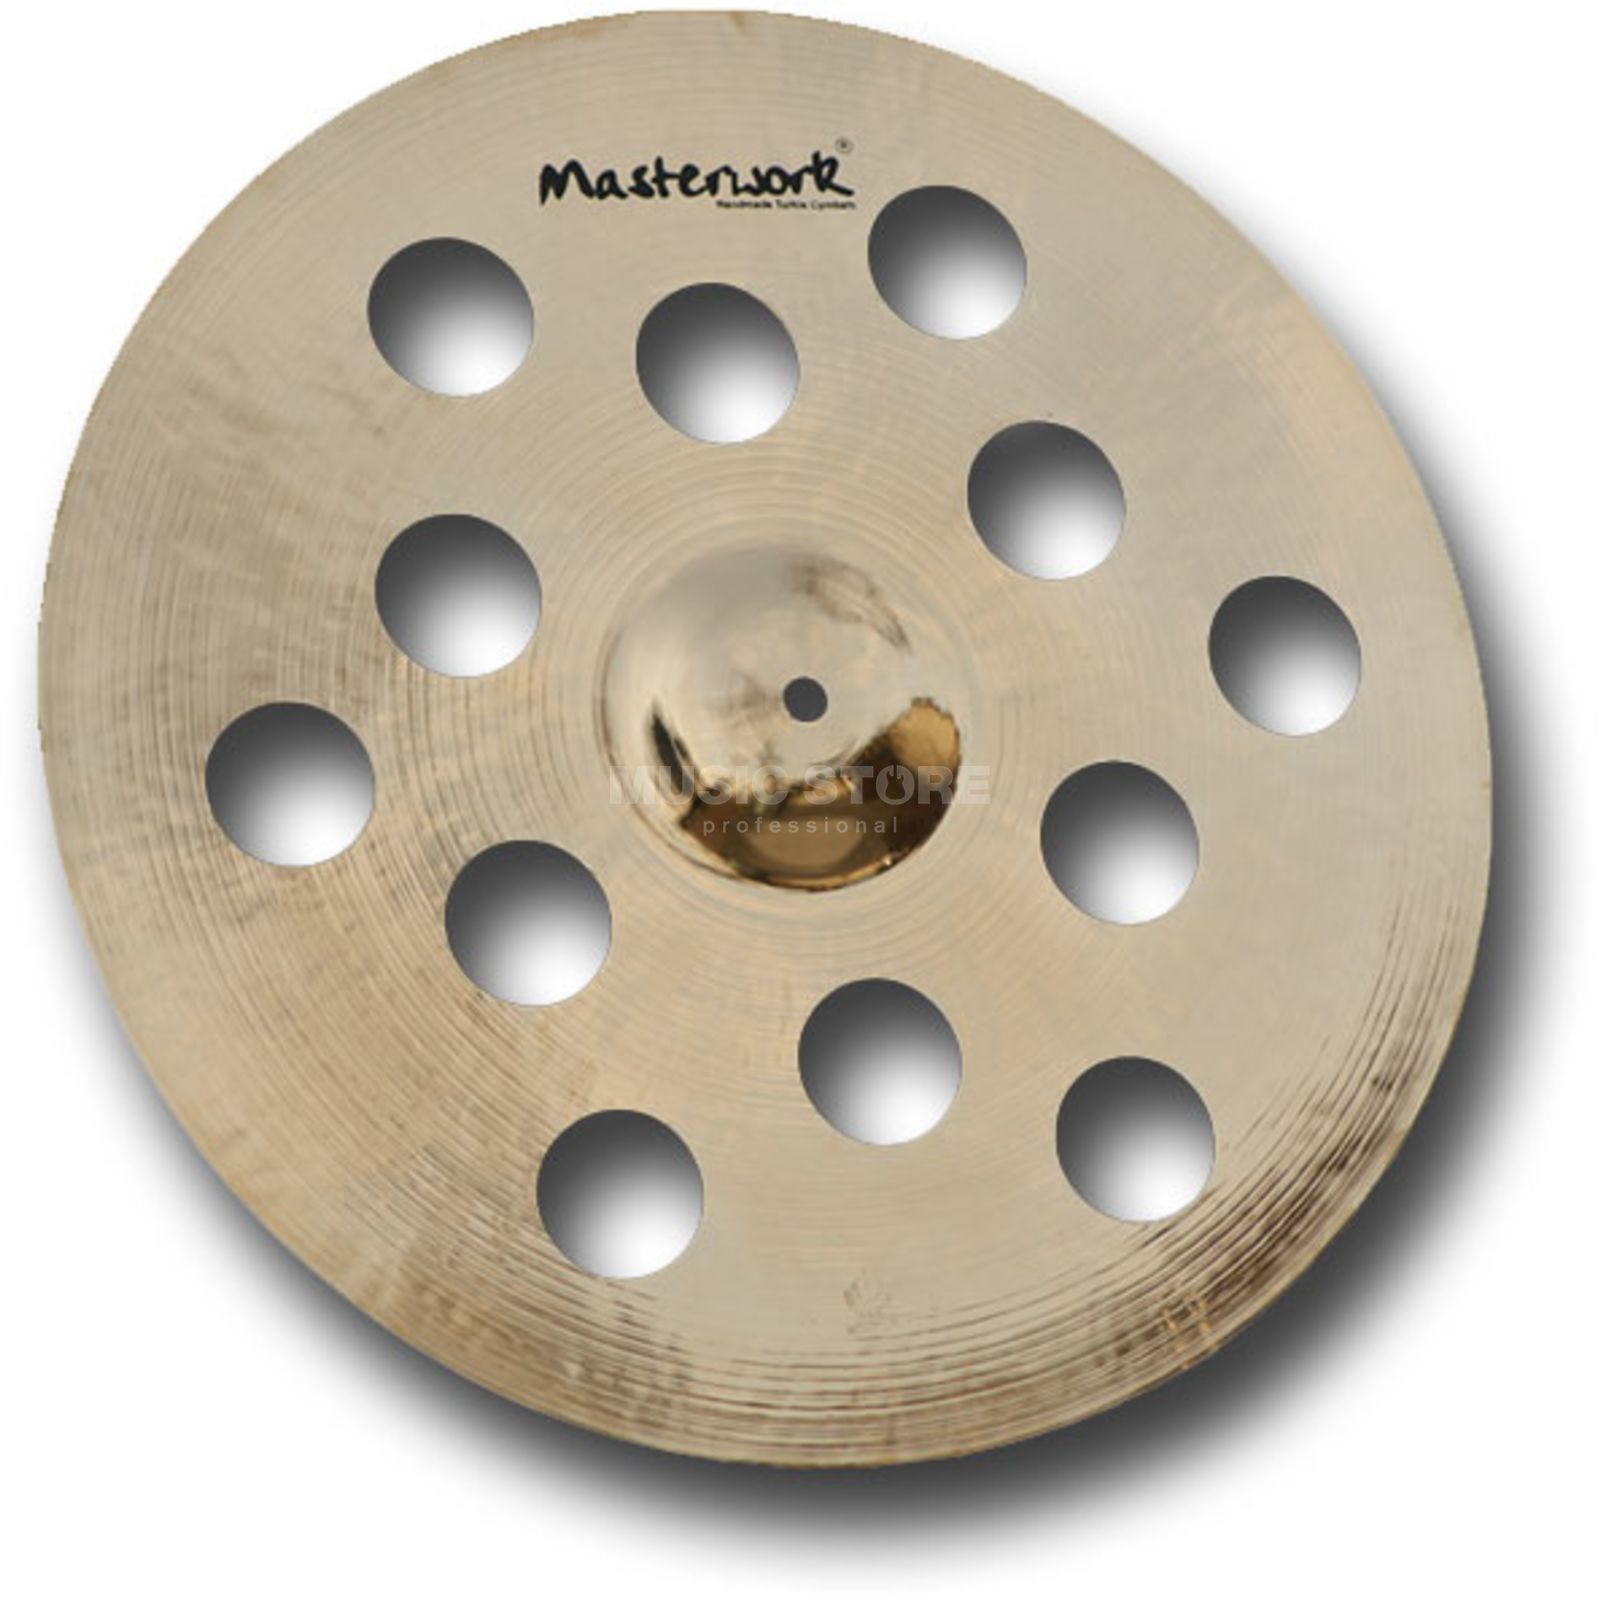 "Masterwork Resonant FX Crash 14"", Brilliant Finish Produktbillede"